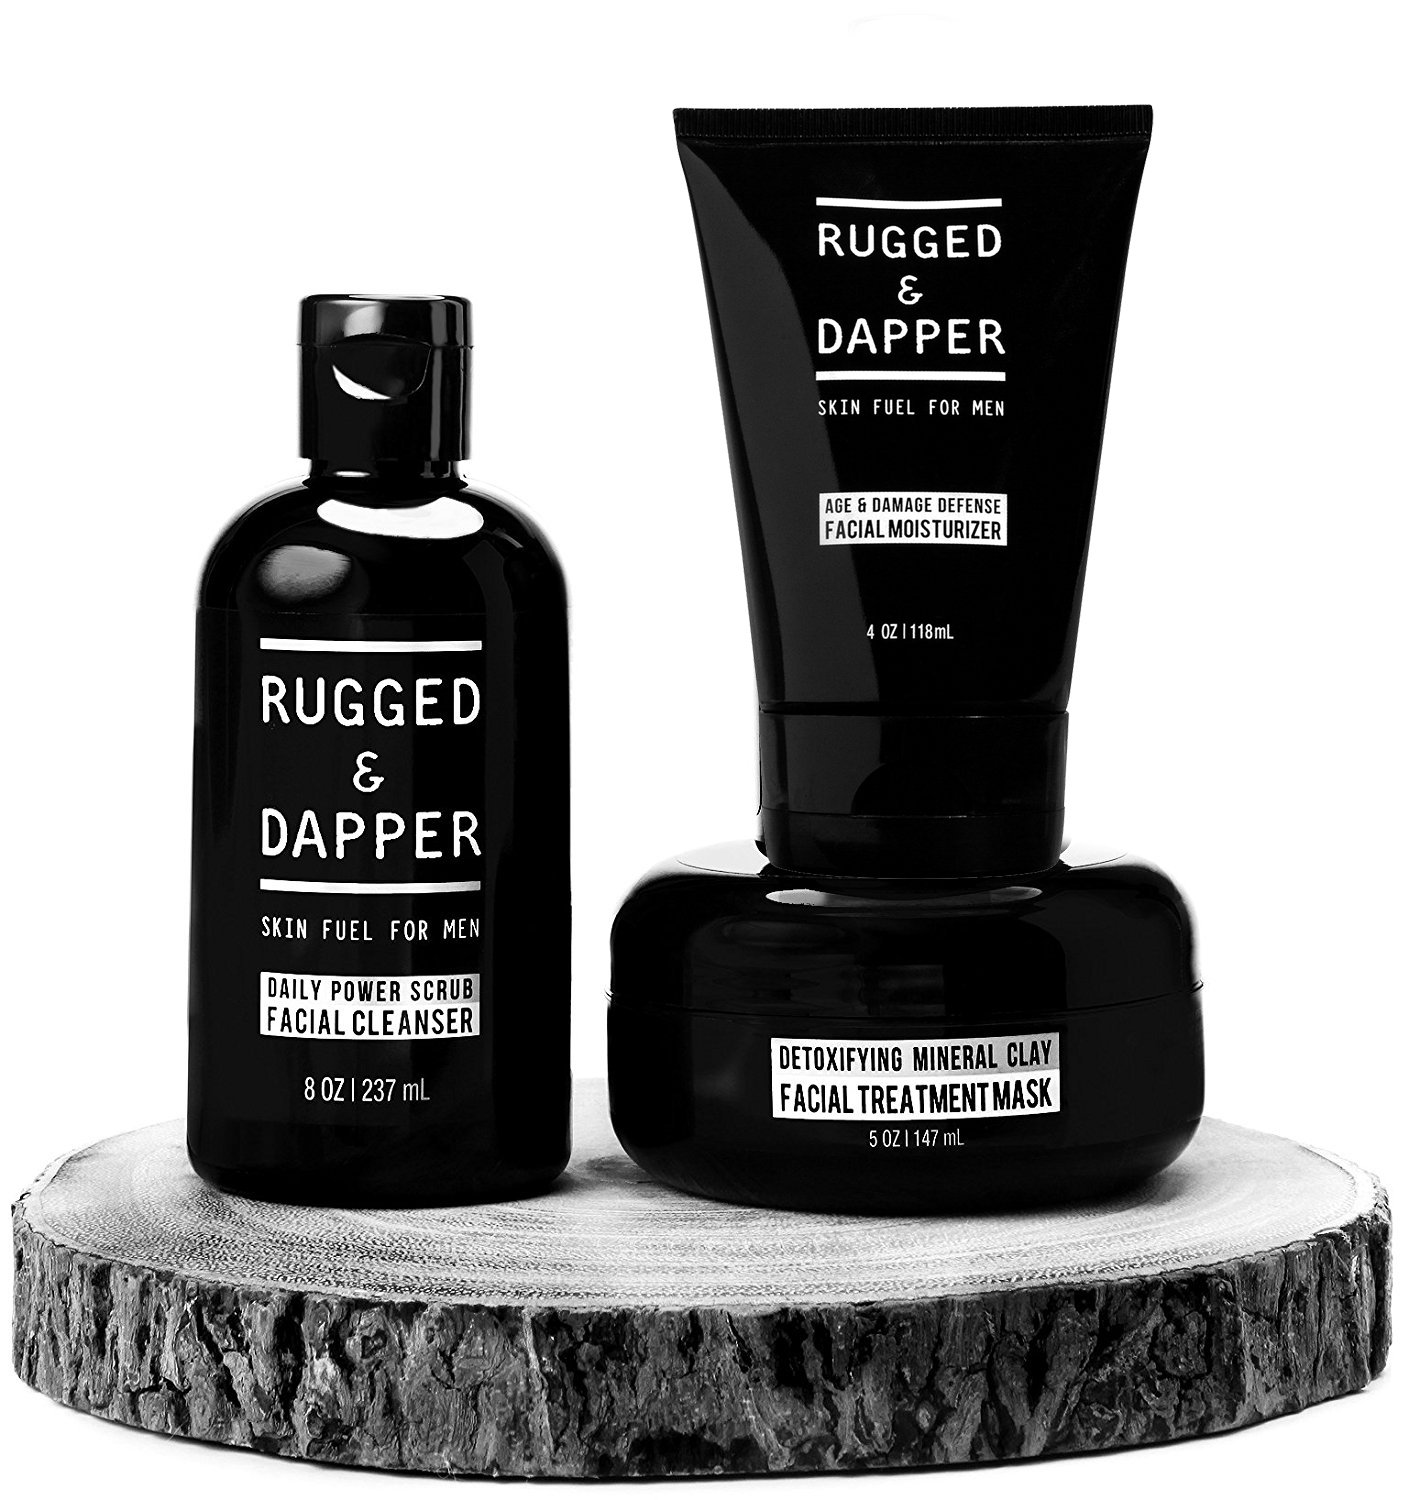 All-In-One Essential Skincare Set For Men - Grooming Kit - Age + Damage Defense Facial Moisturizer - Daily Power Scrub Cleanser - Detox Mineral Clay Facial Mask - Natural & Certified Organic